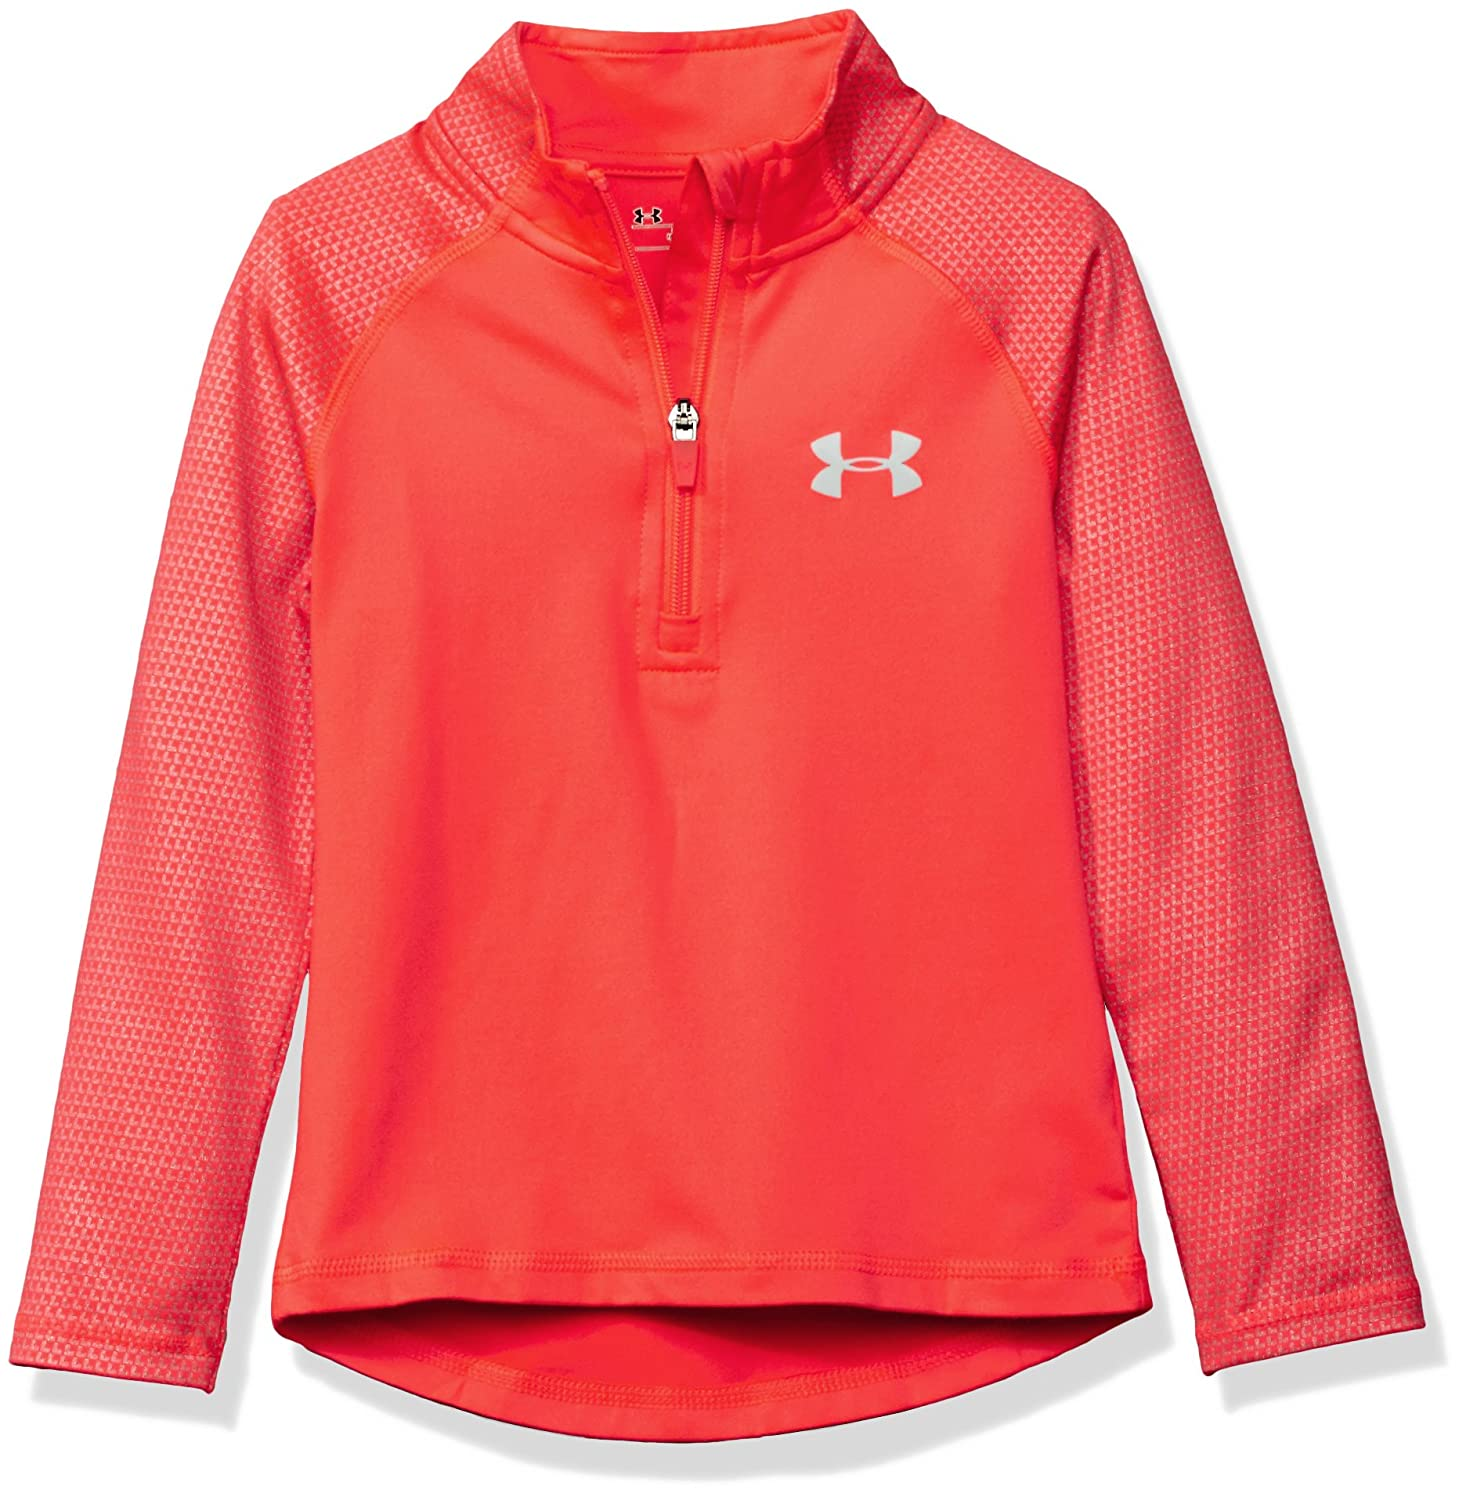 Under Armour Girls' 1/4 Zip Long Sleeve Pullover Chain Grid 1/4 Zip Jacket